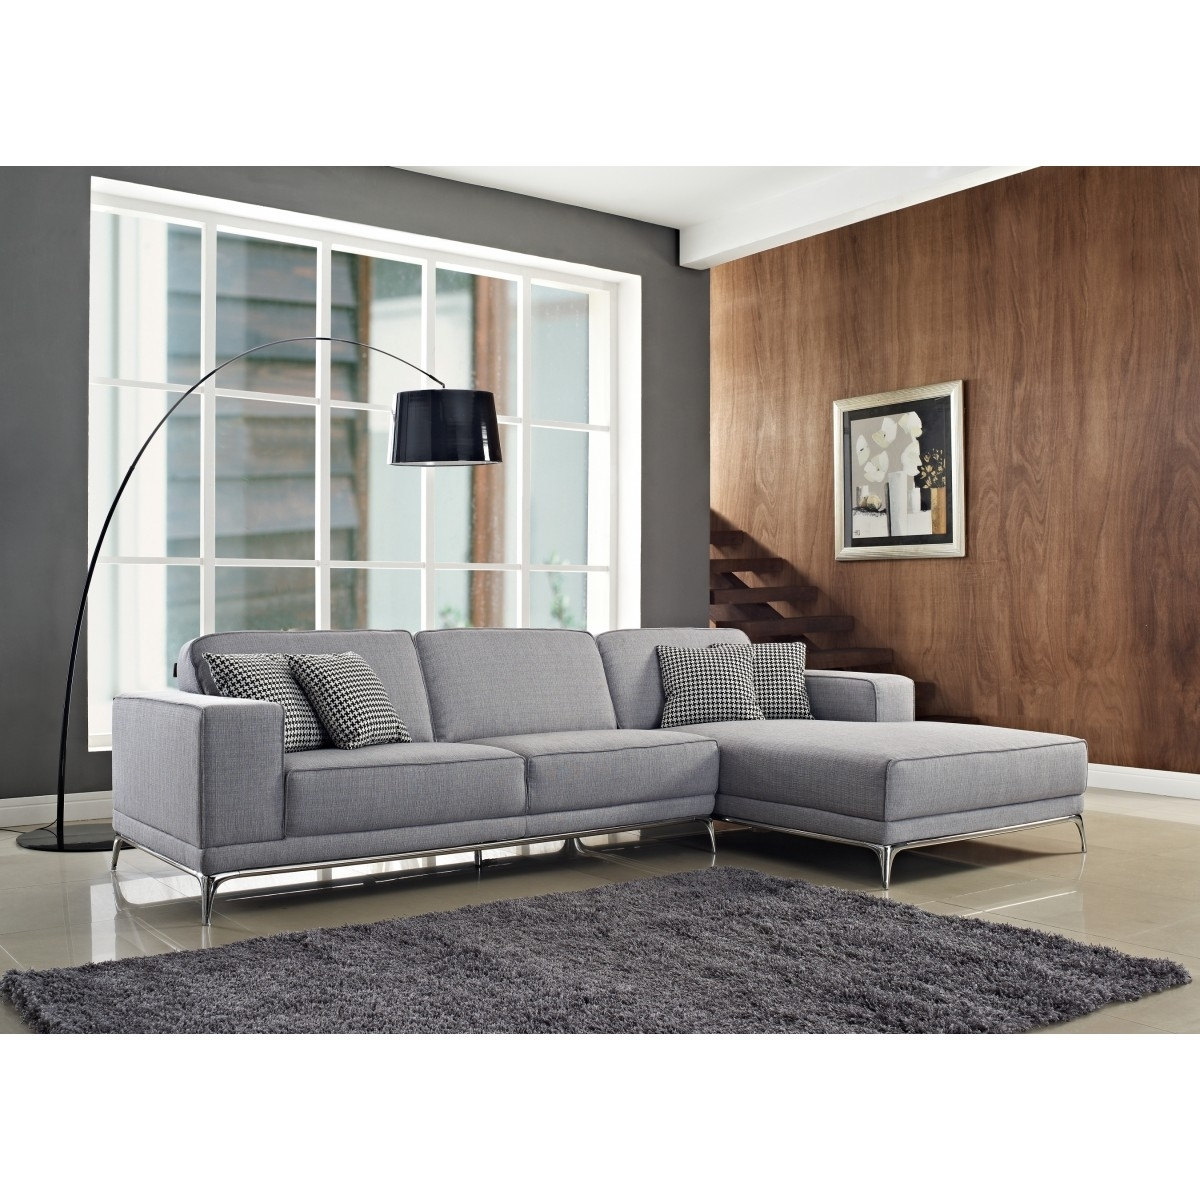 Agata Sectional Sofa | Light Grey | Sectional Sofas Cr Agata In Light Grey Sectional Sofas (Image 2 of 10)